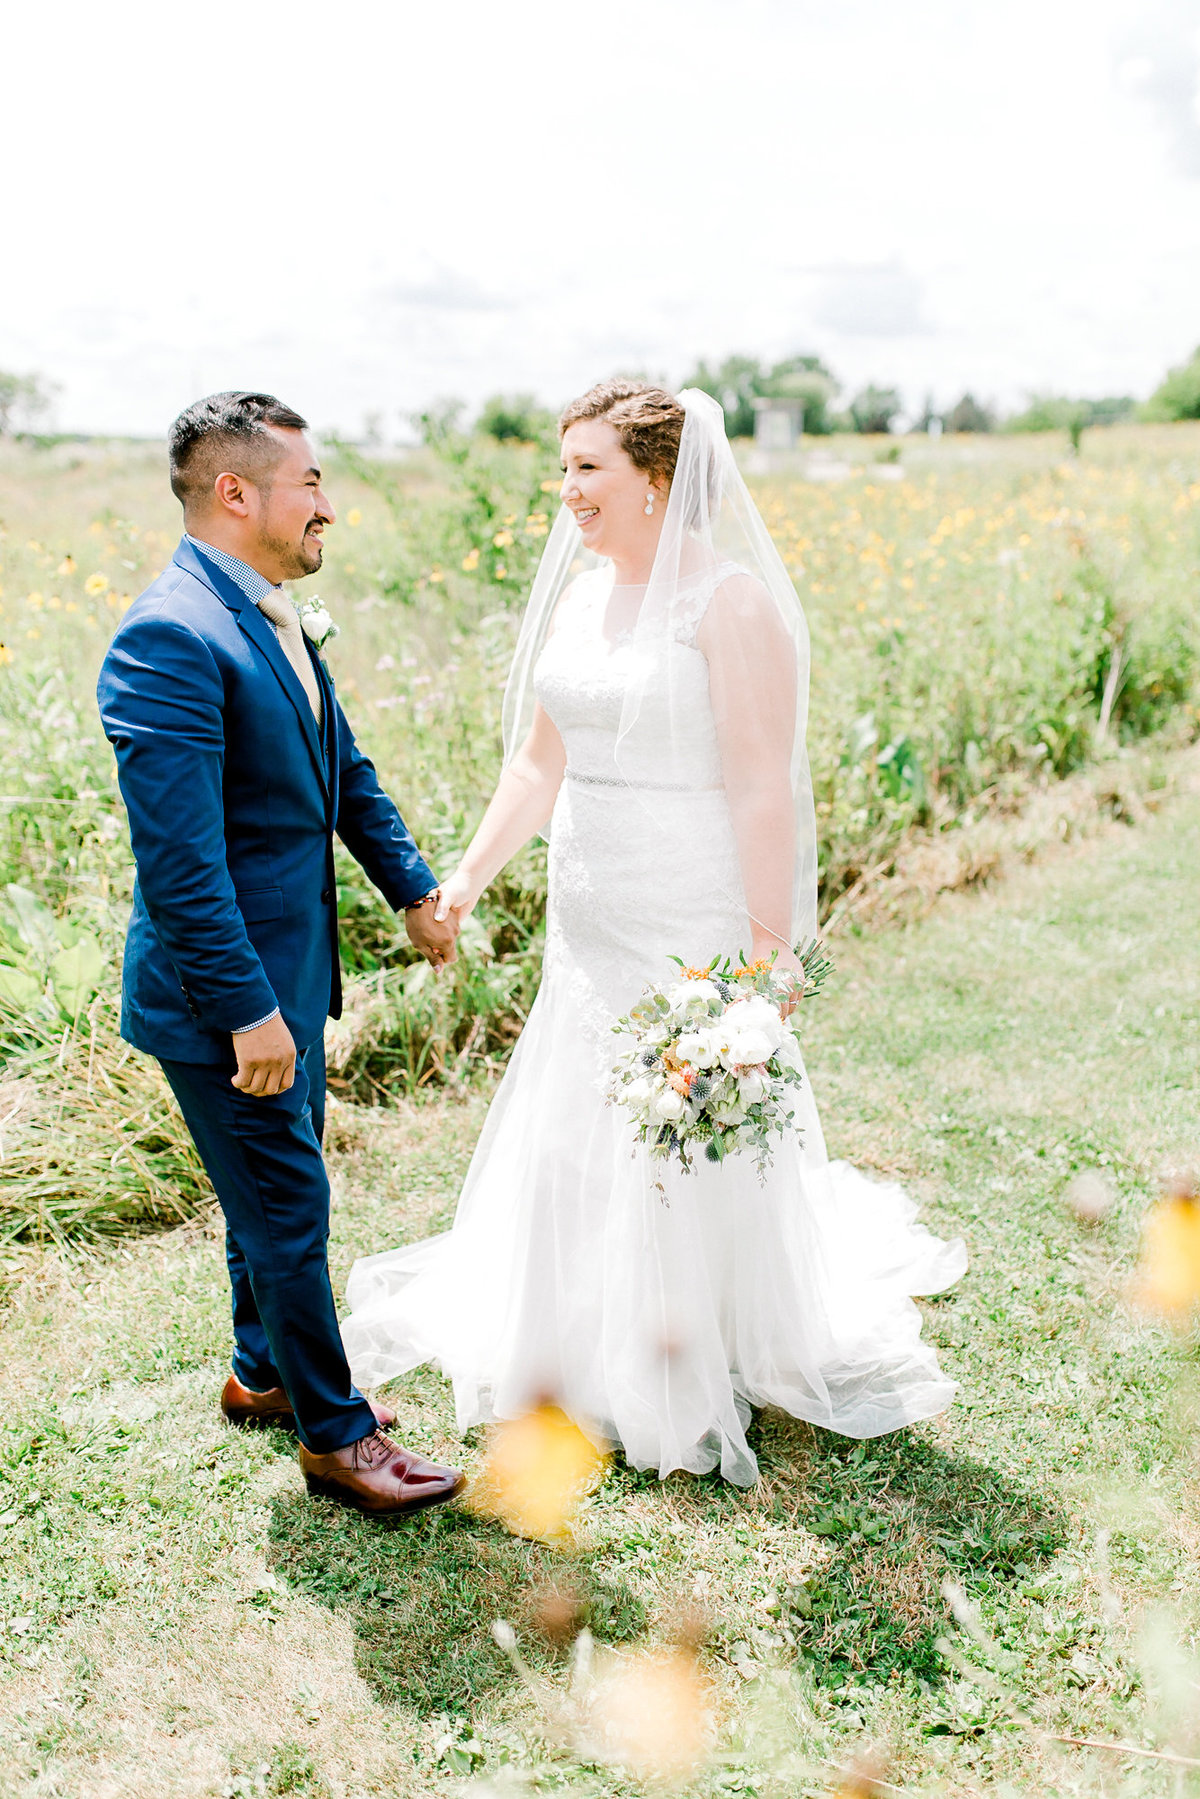 07.28.2018_Laurel+Josue-10